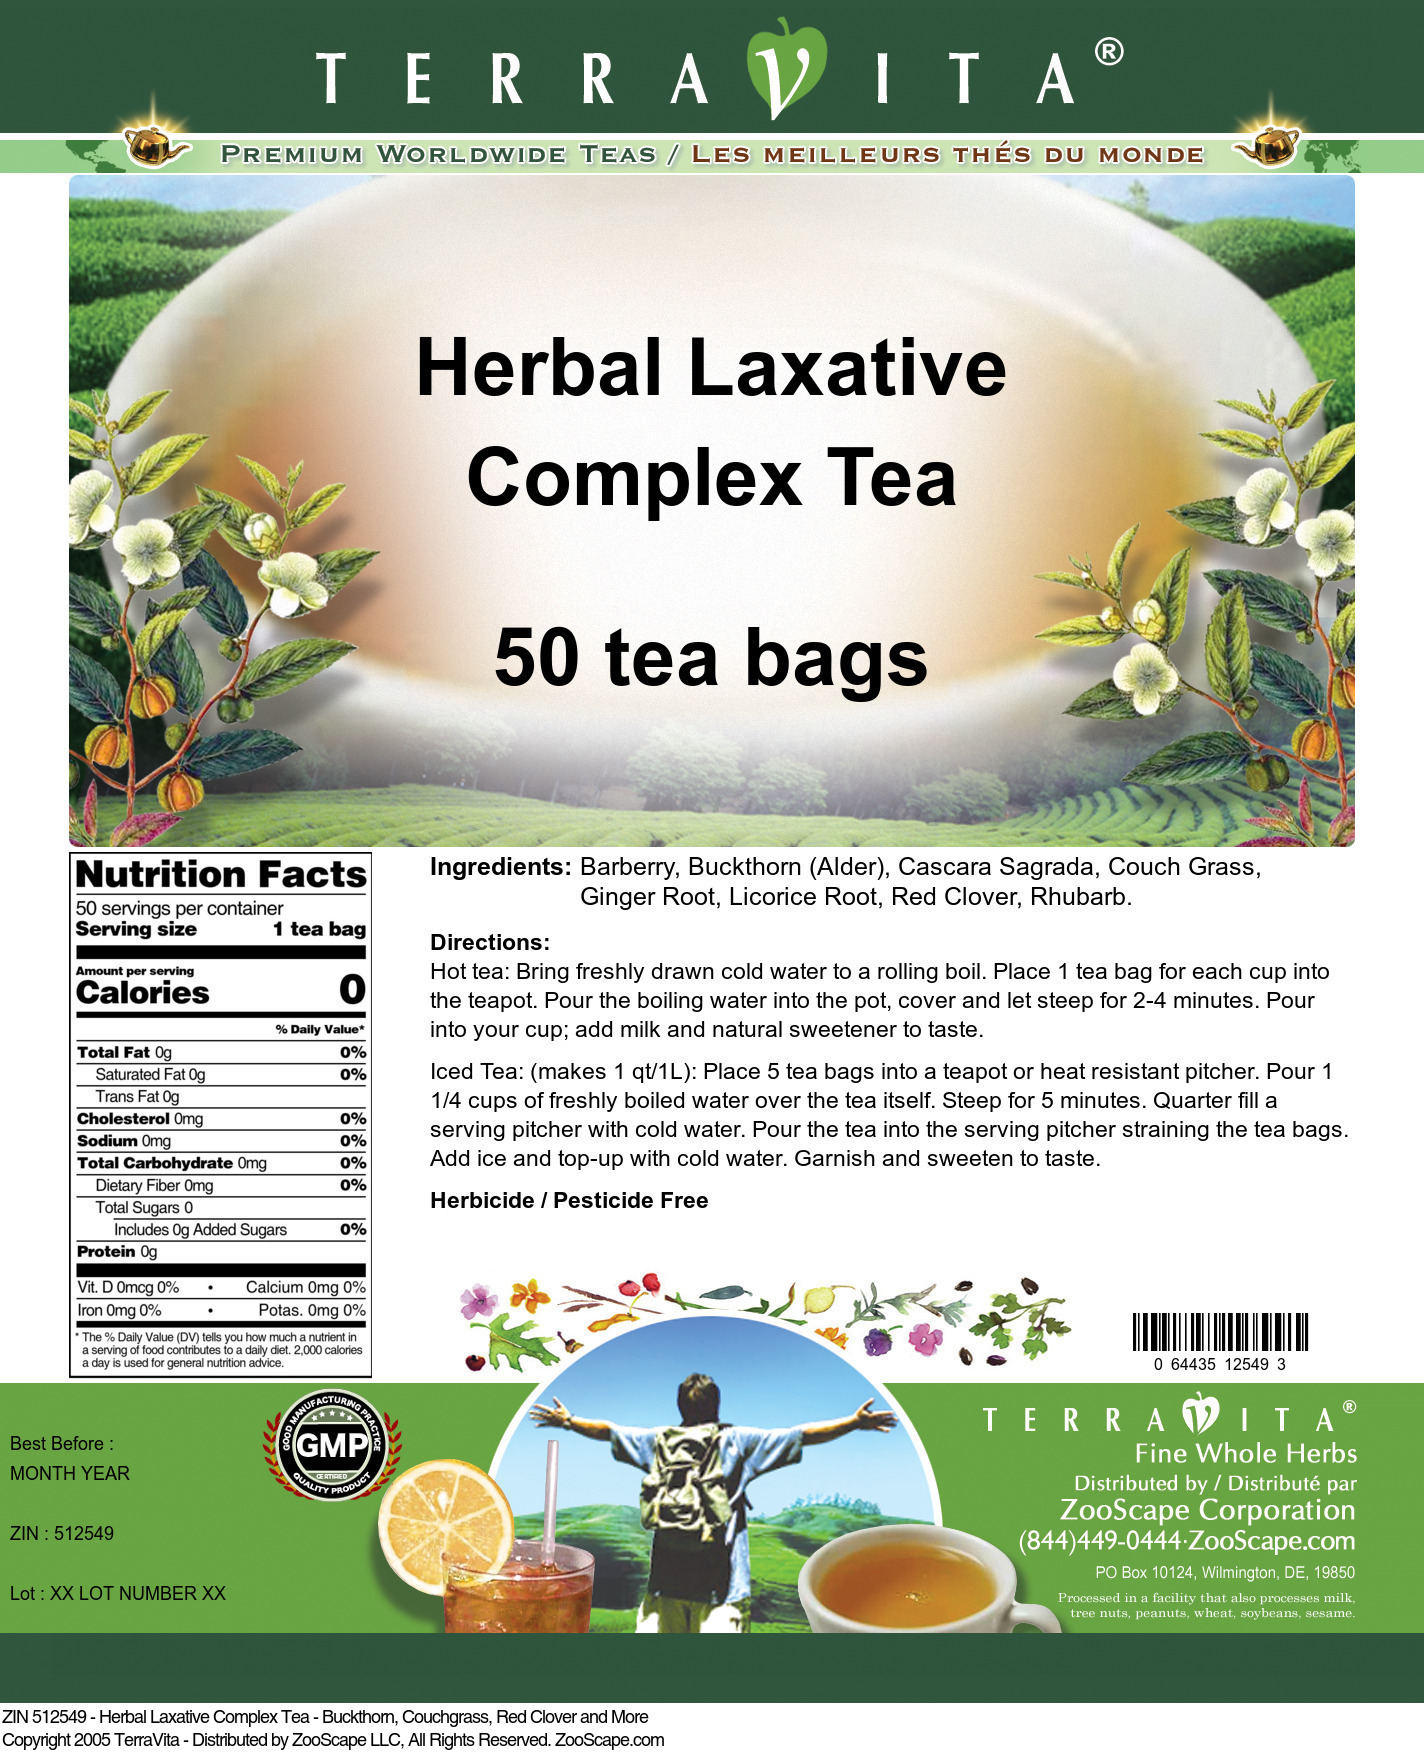 Herbal Laxative Complex